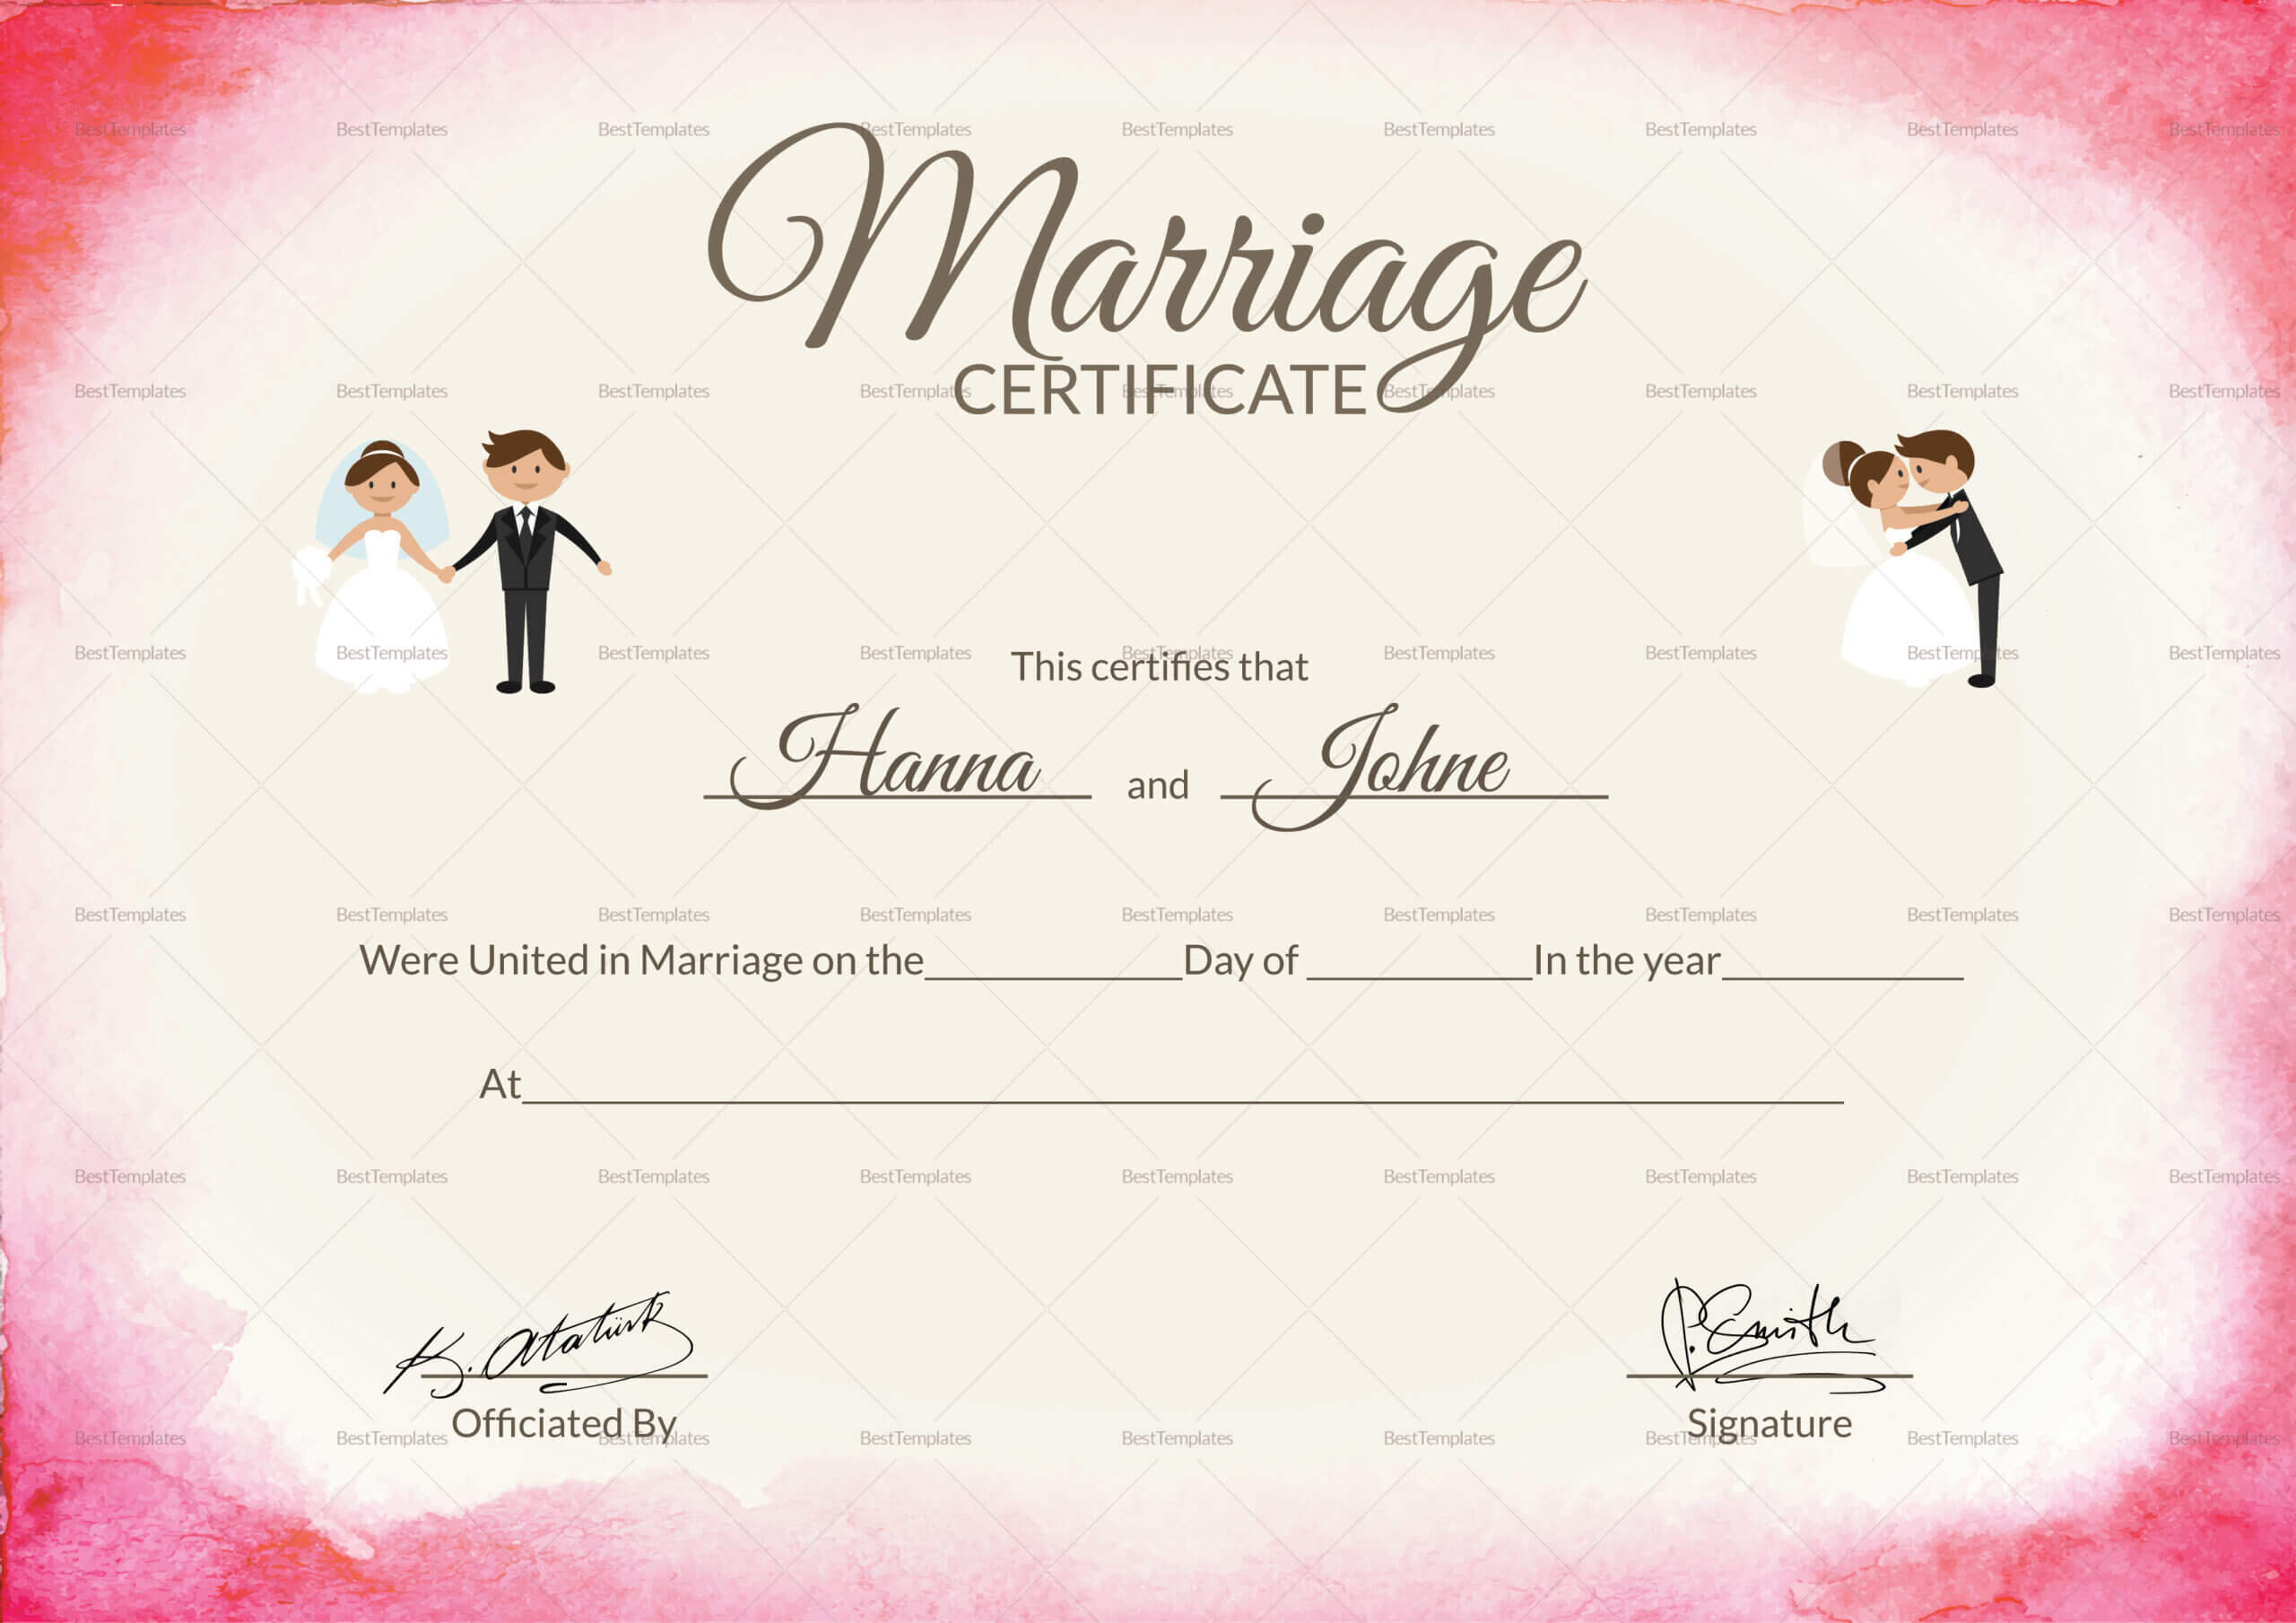 031 Certificate Of Marriage Template Certificate28129 In Certificate Of Marriage Template